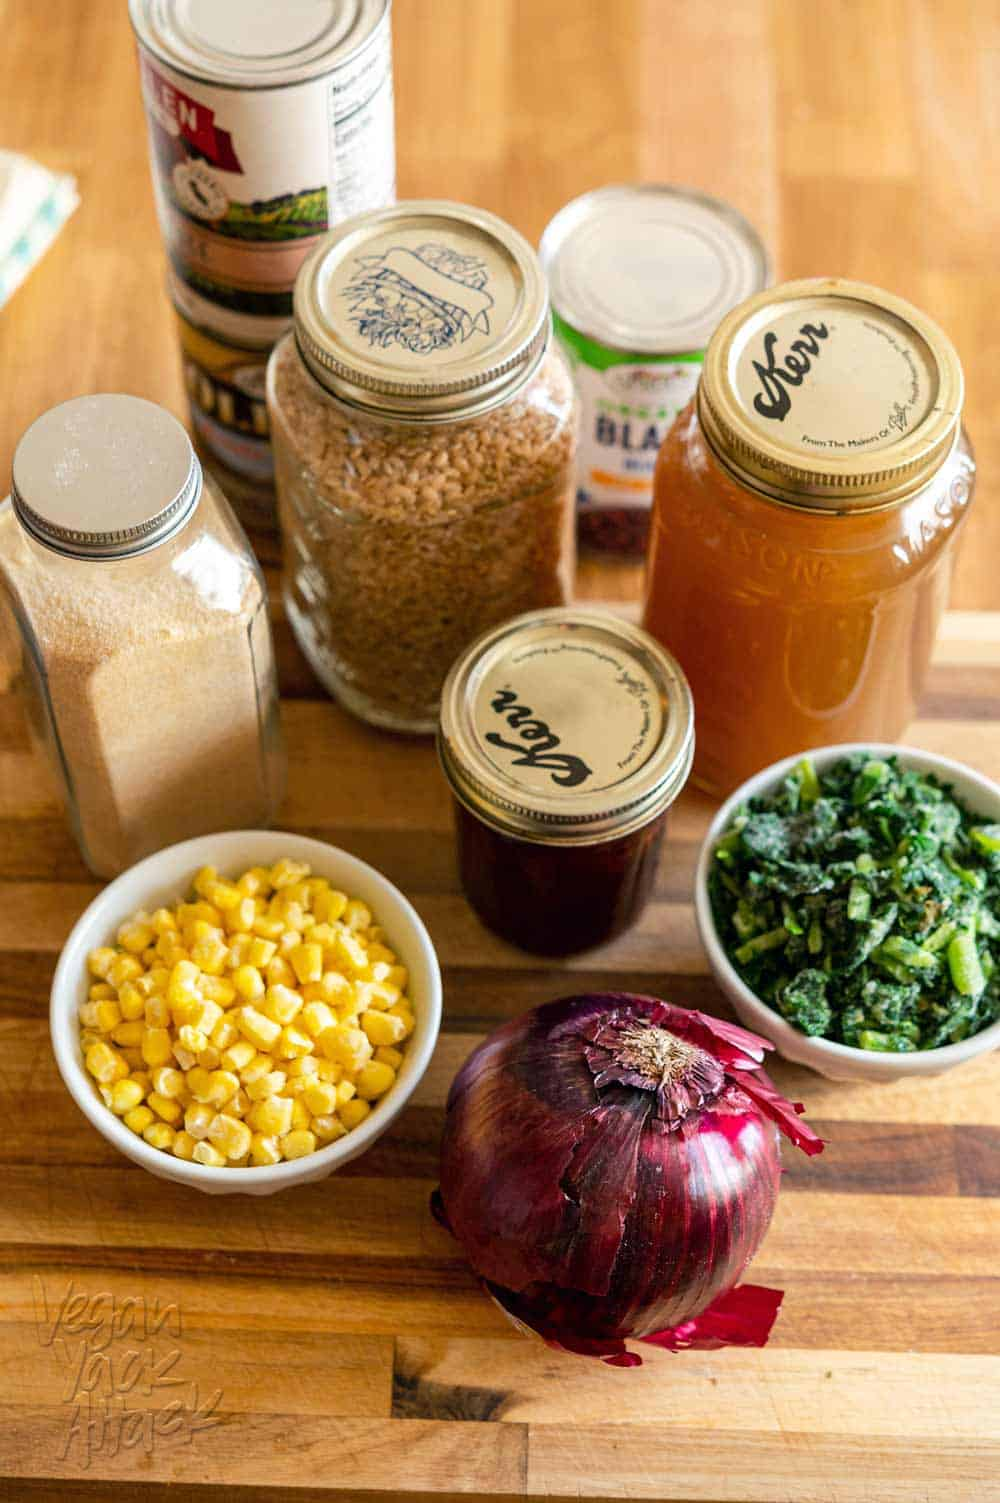 Image of ingredients: red onion, corn, kale, vegetable broth, grains and beans